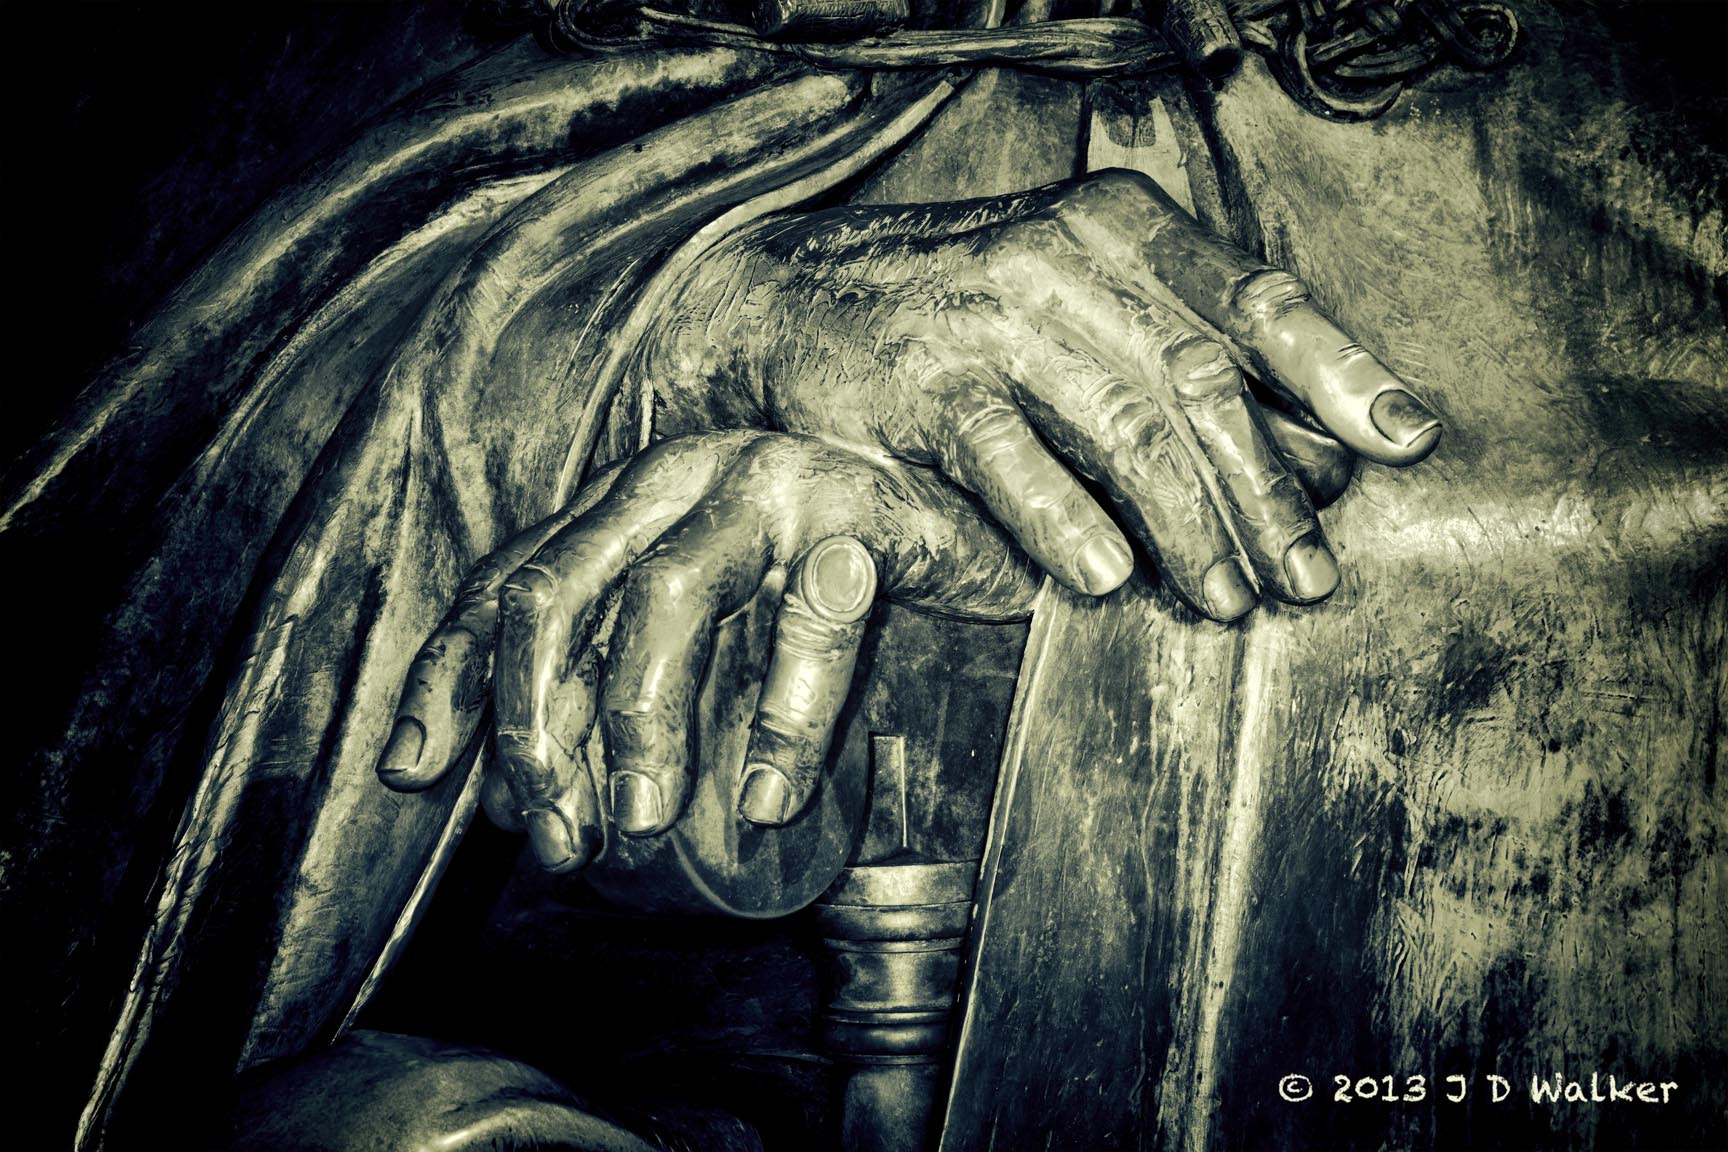 Photograph Hands of FDR Memorial, Washington, DC by Jim Walker on 500px